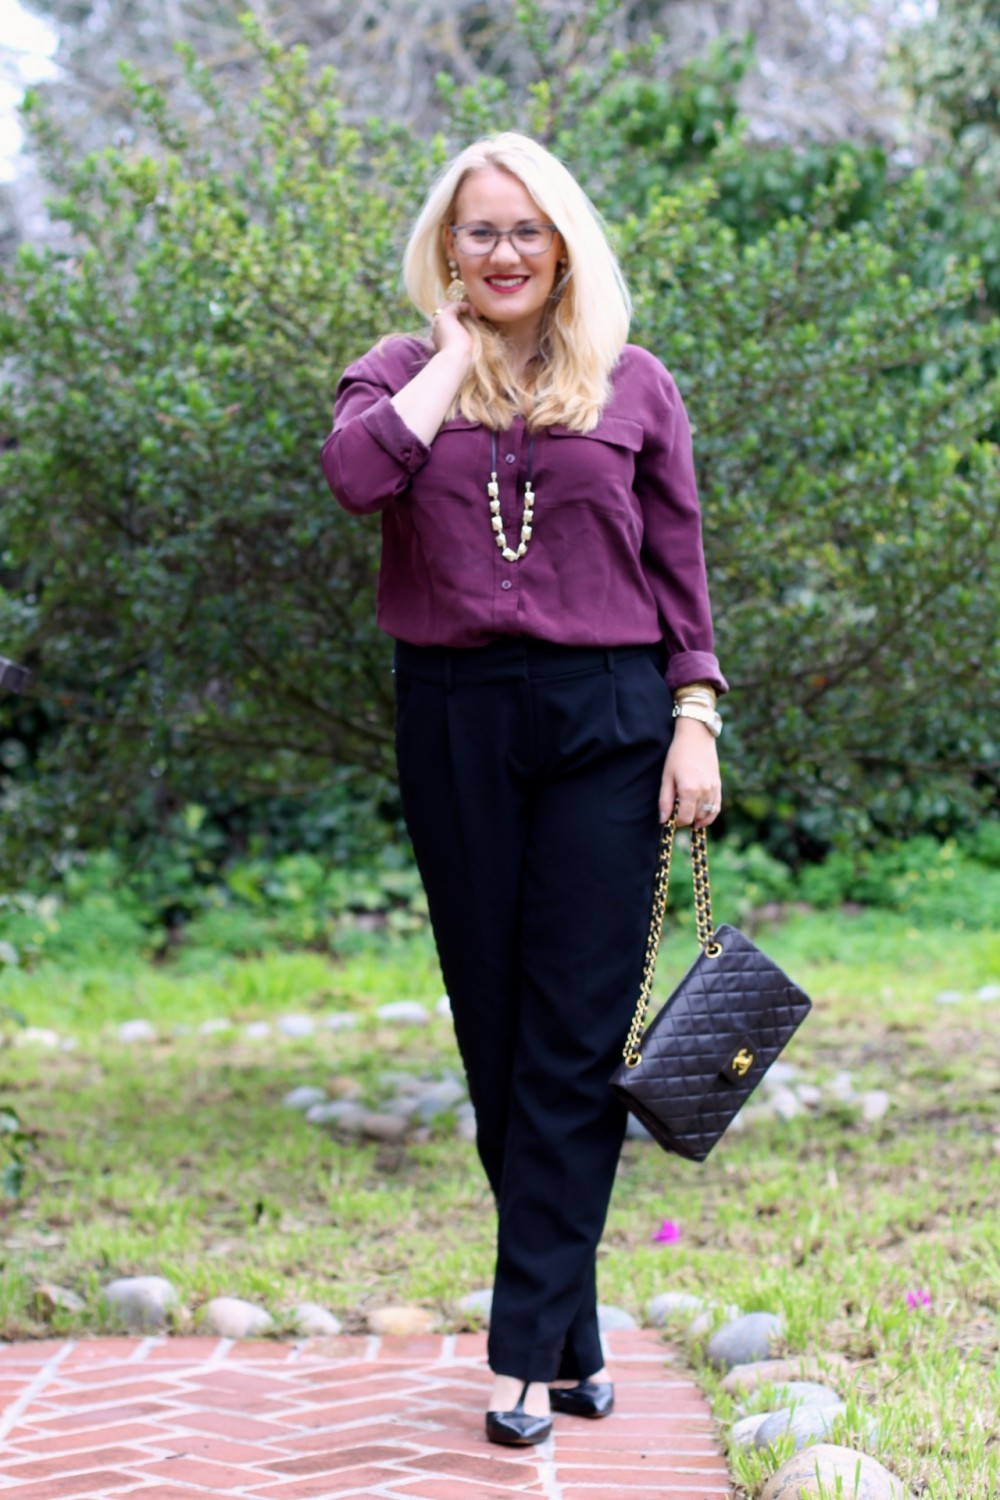 Sequin Tuxedo Trousers-Work Wear-Outfit Inspiration-Chanel Classic Flap Bag-Equipment Blouse-Nine West T-Strap Heels-Have Need Want 14